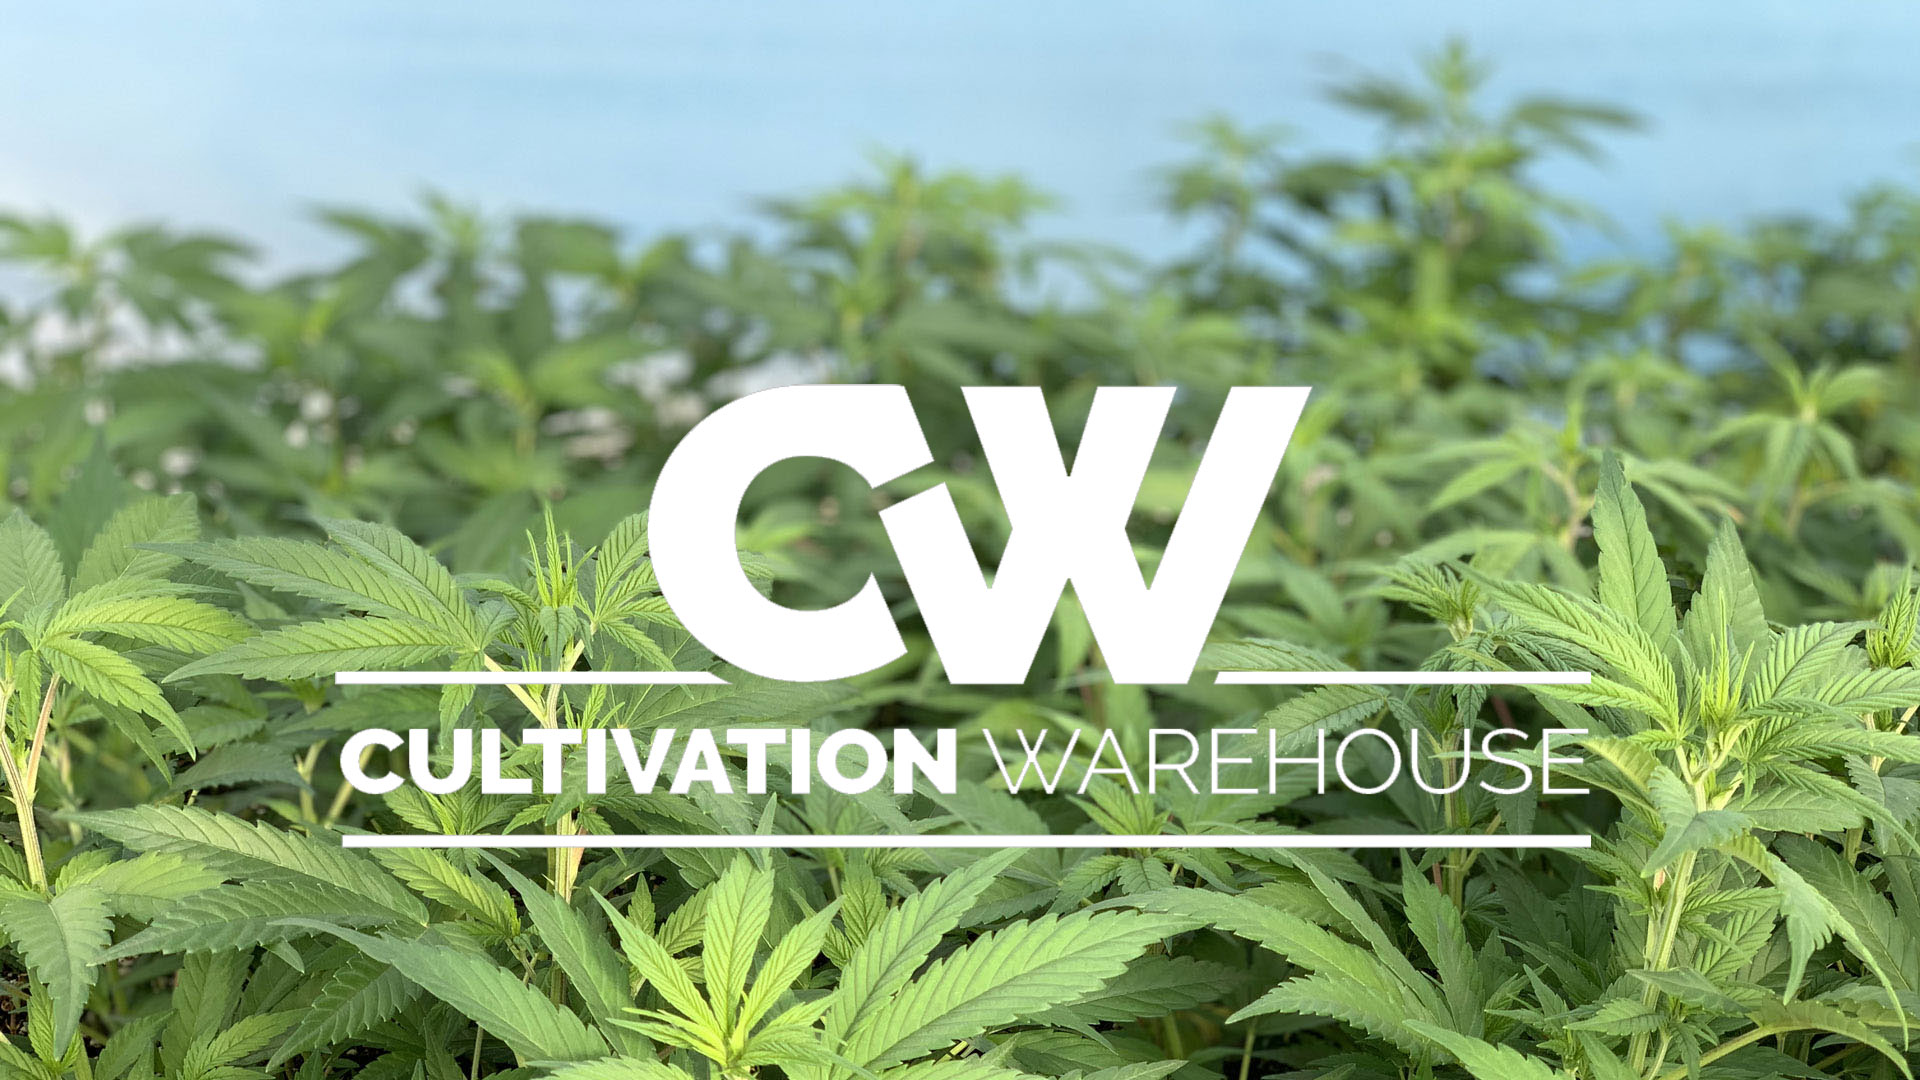 New branding for a New Era of CW